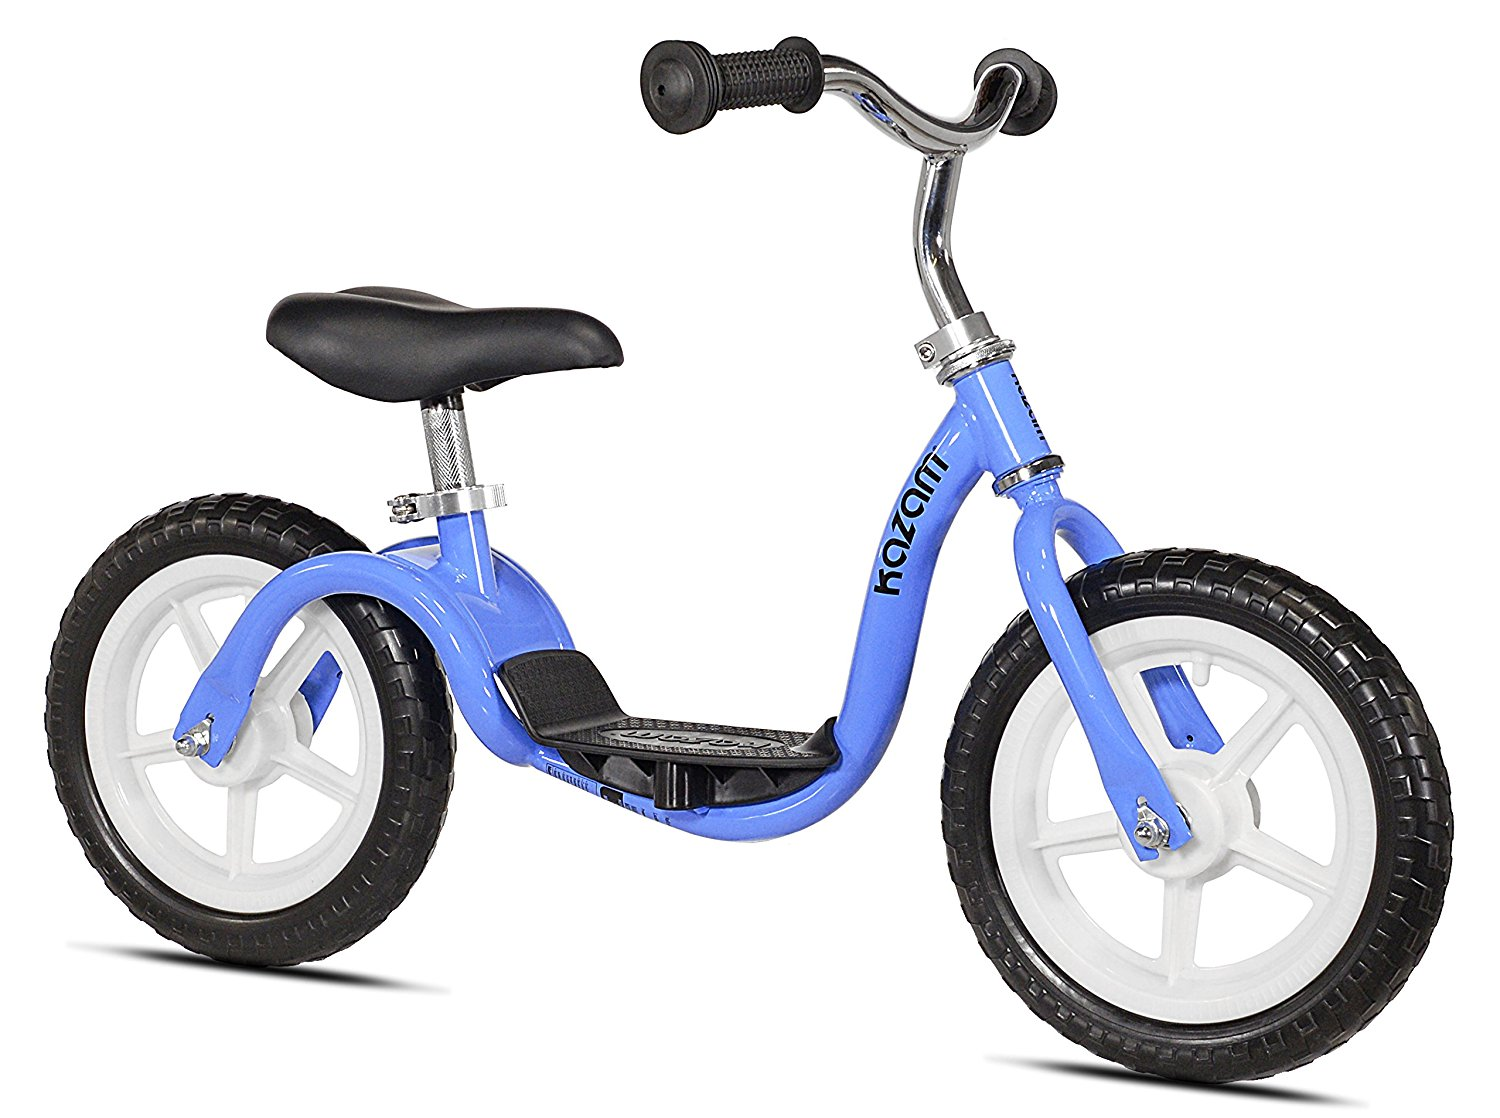 KaZAM Balance Bike Review